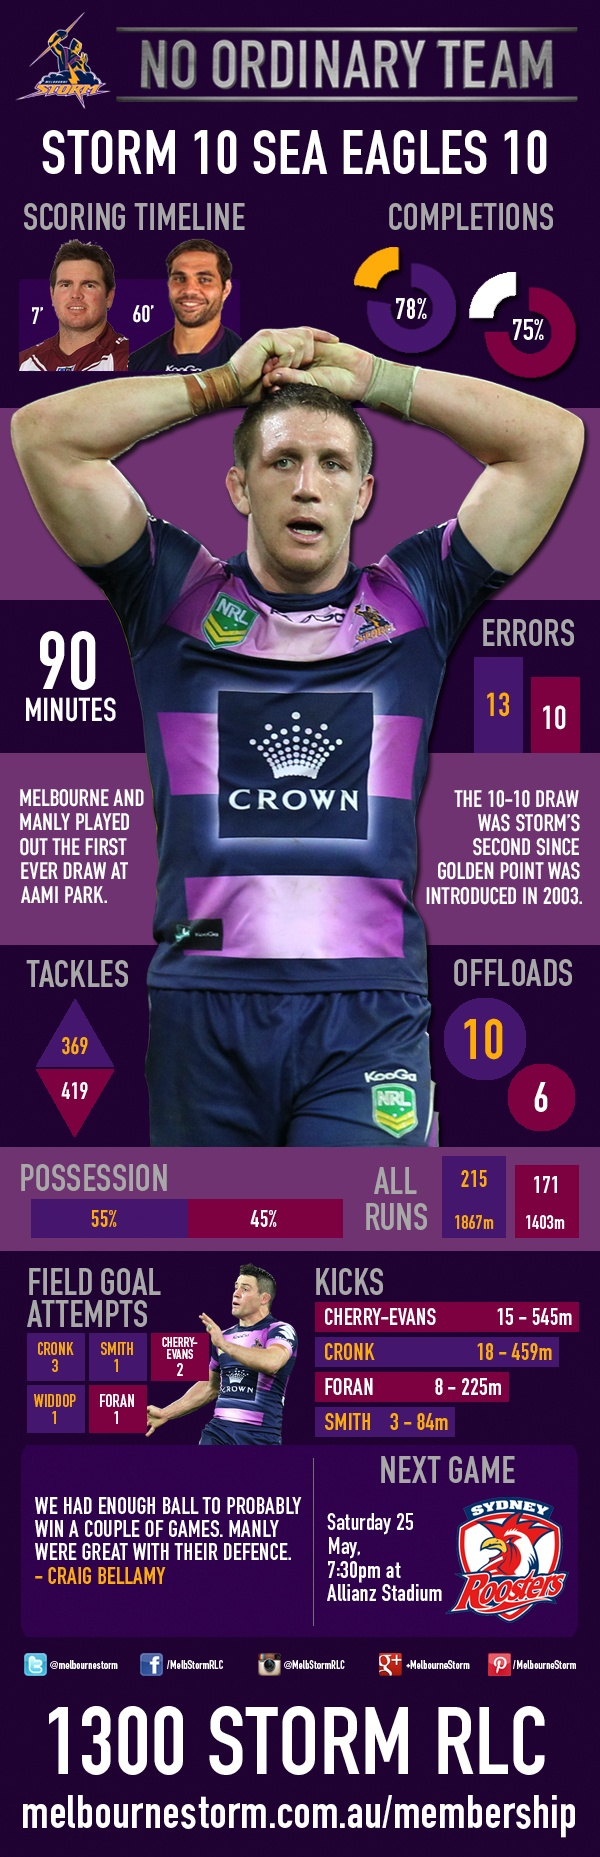 All the key numbers from Melbourne's 10-10 draw with the Manly Sea Eagles - http://www.melbournestorm.com.au/news-display/Infographic-Storm-10--Sea-Eagles-10/75228